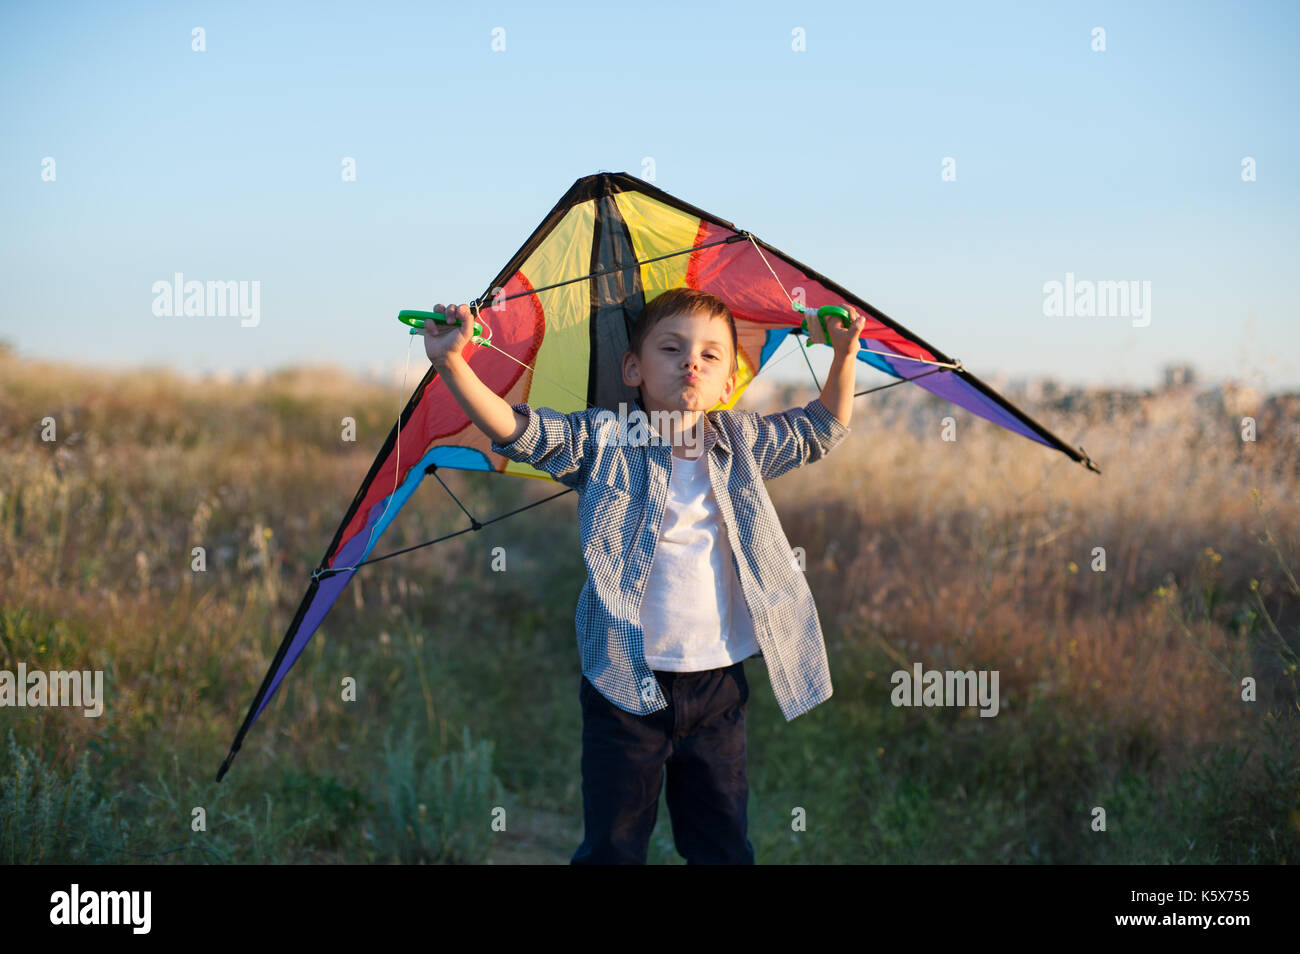 Grimacing funny boy holding a kite behind his shoulders - Stock Image